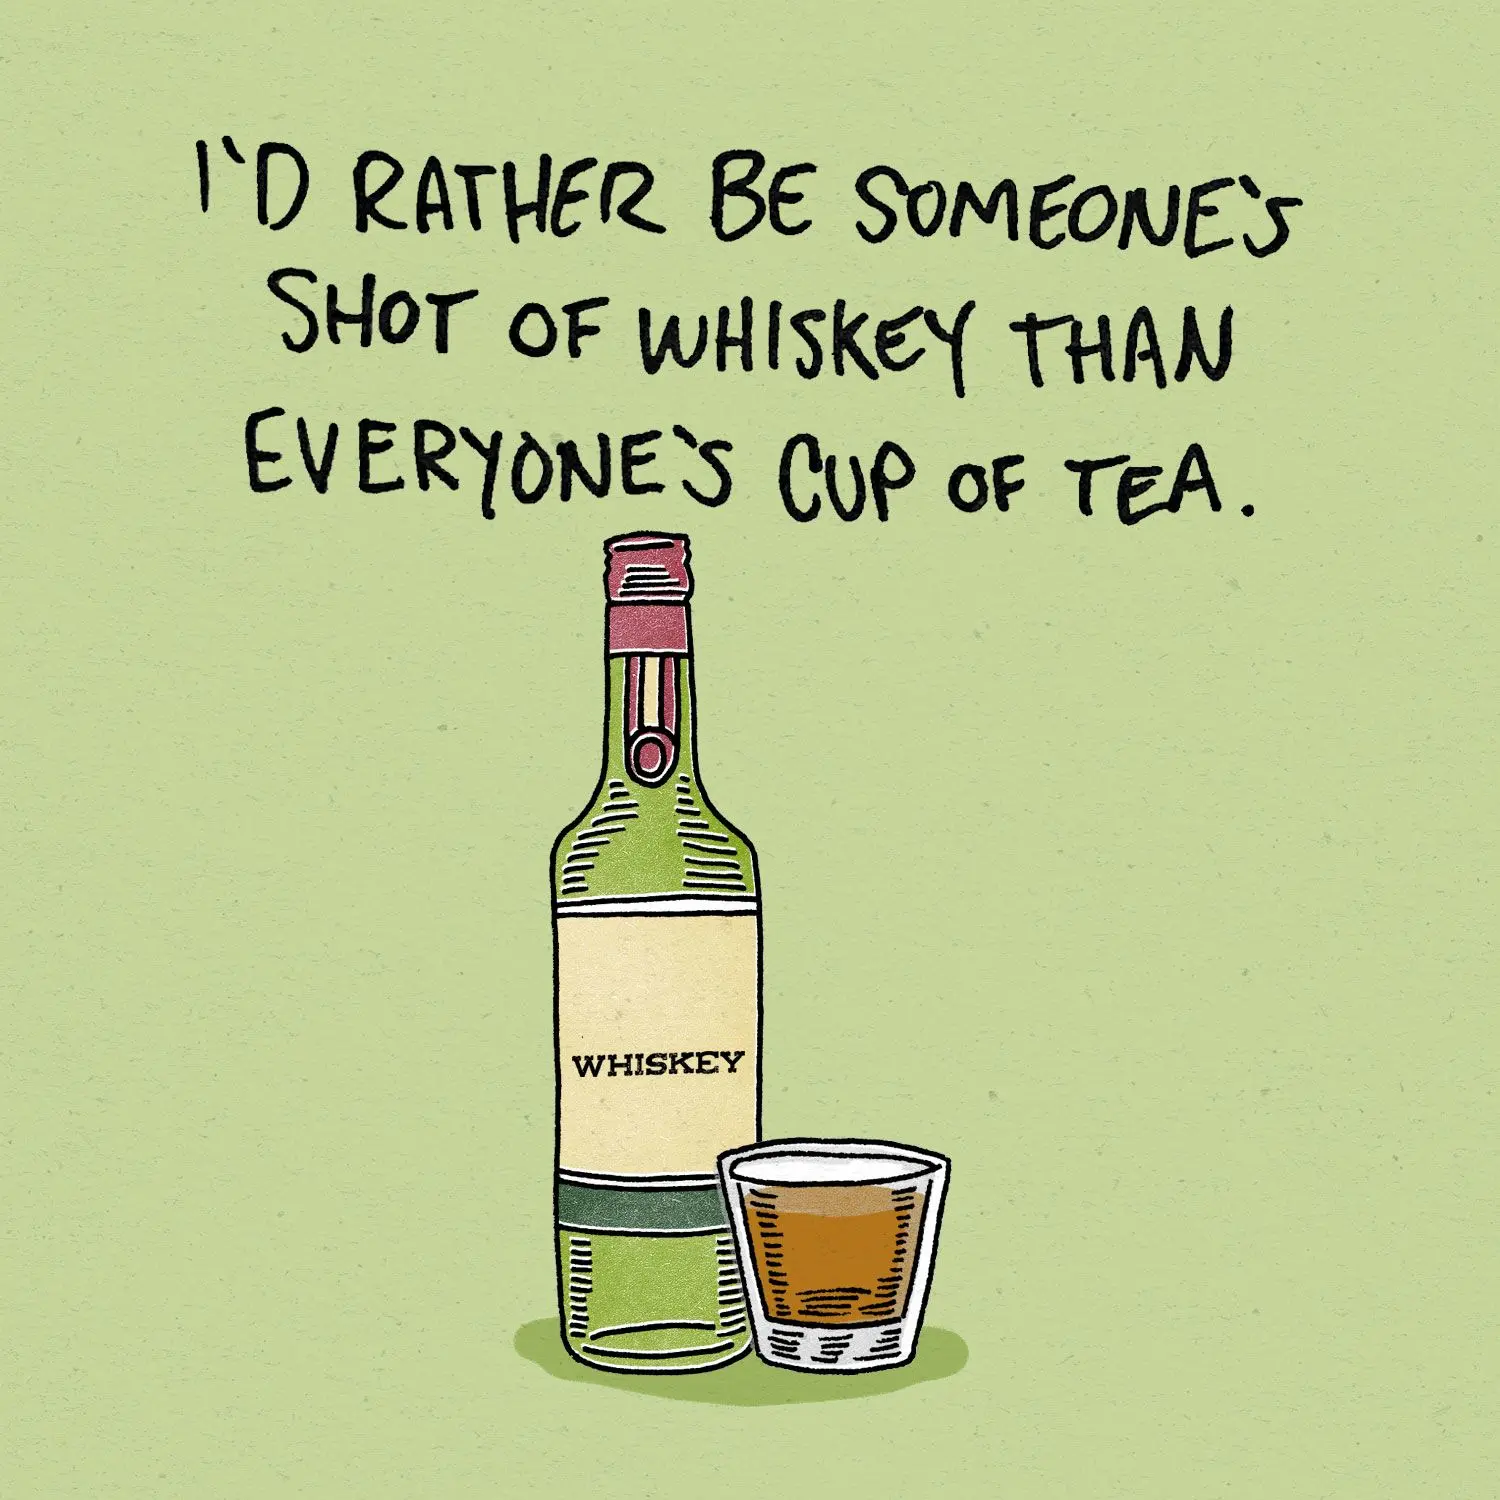 Best whiskey cocktails, whiskey brands and more | Booze Puns ... #irishCoffee